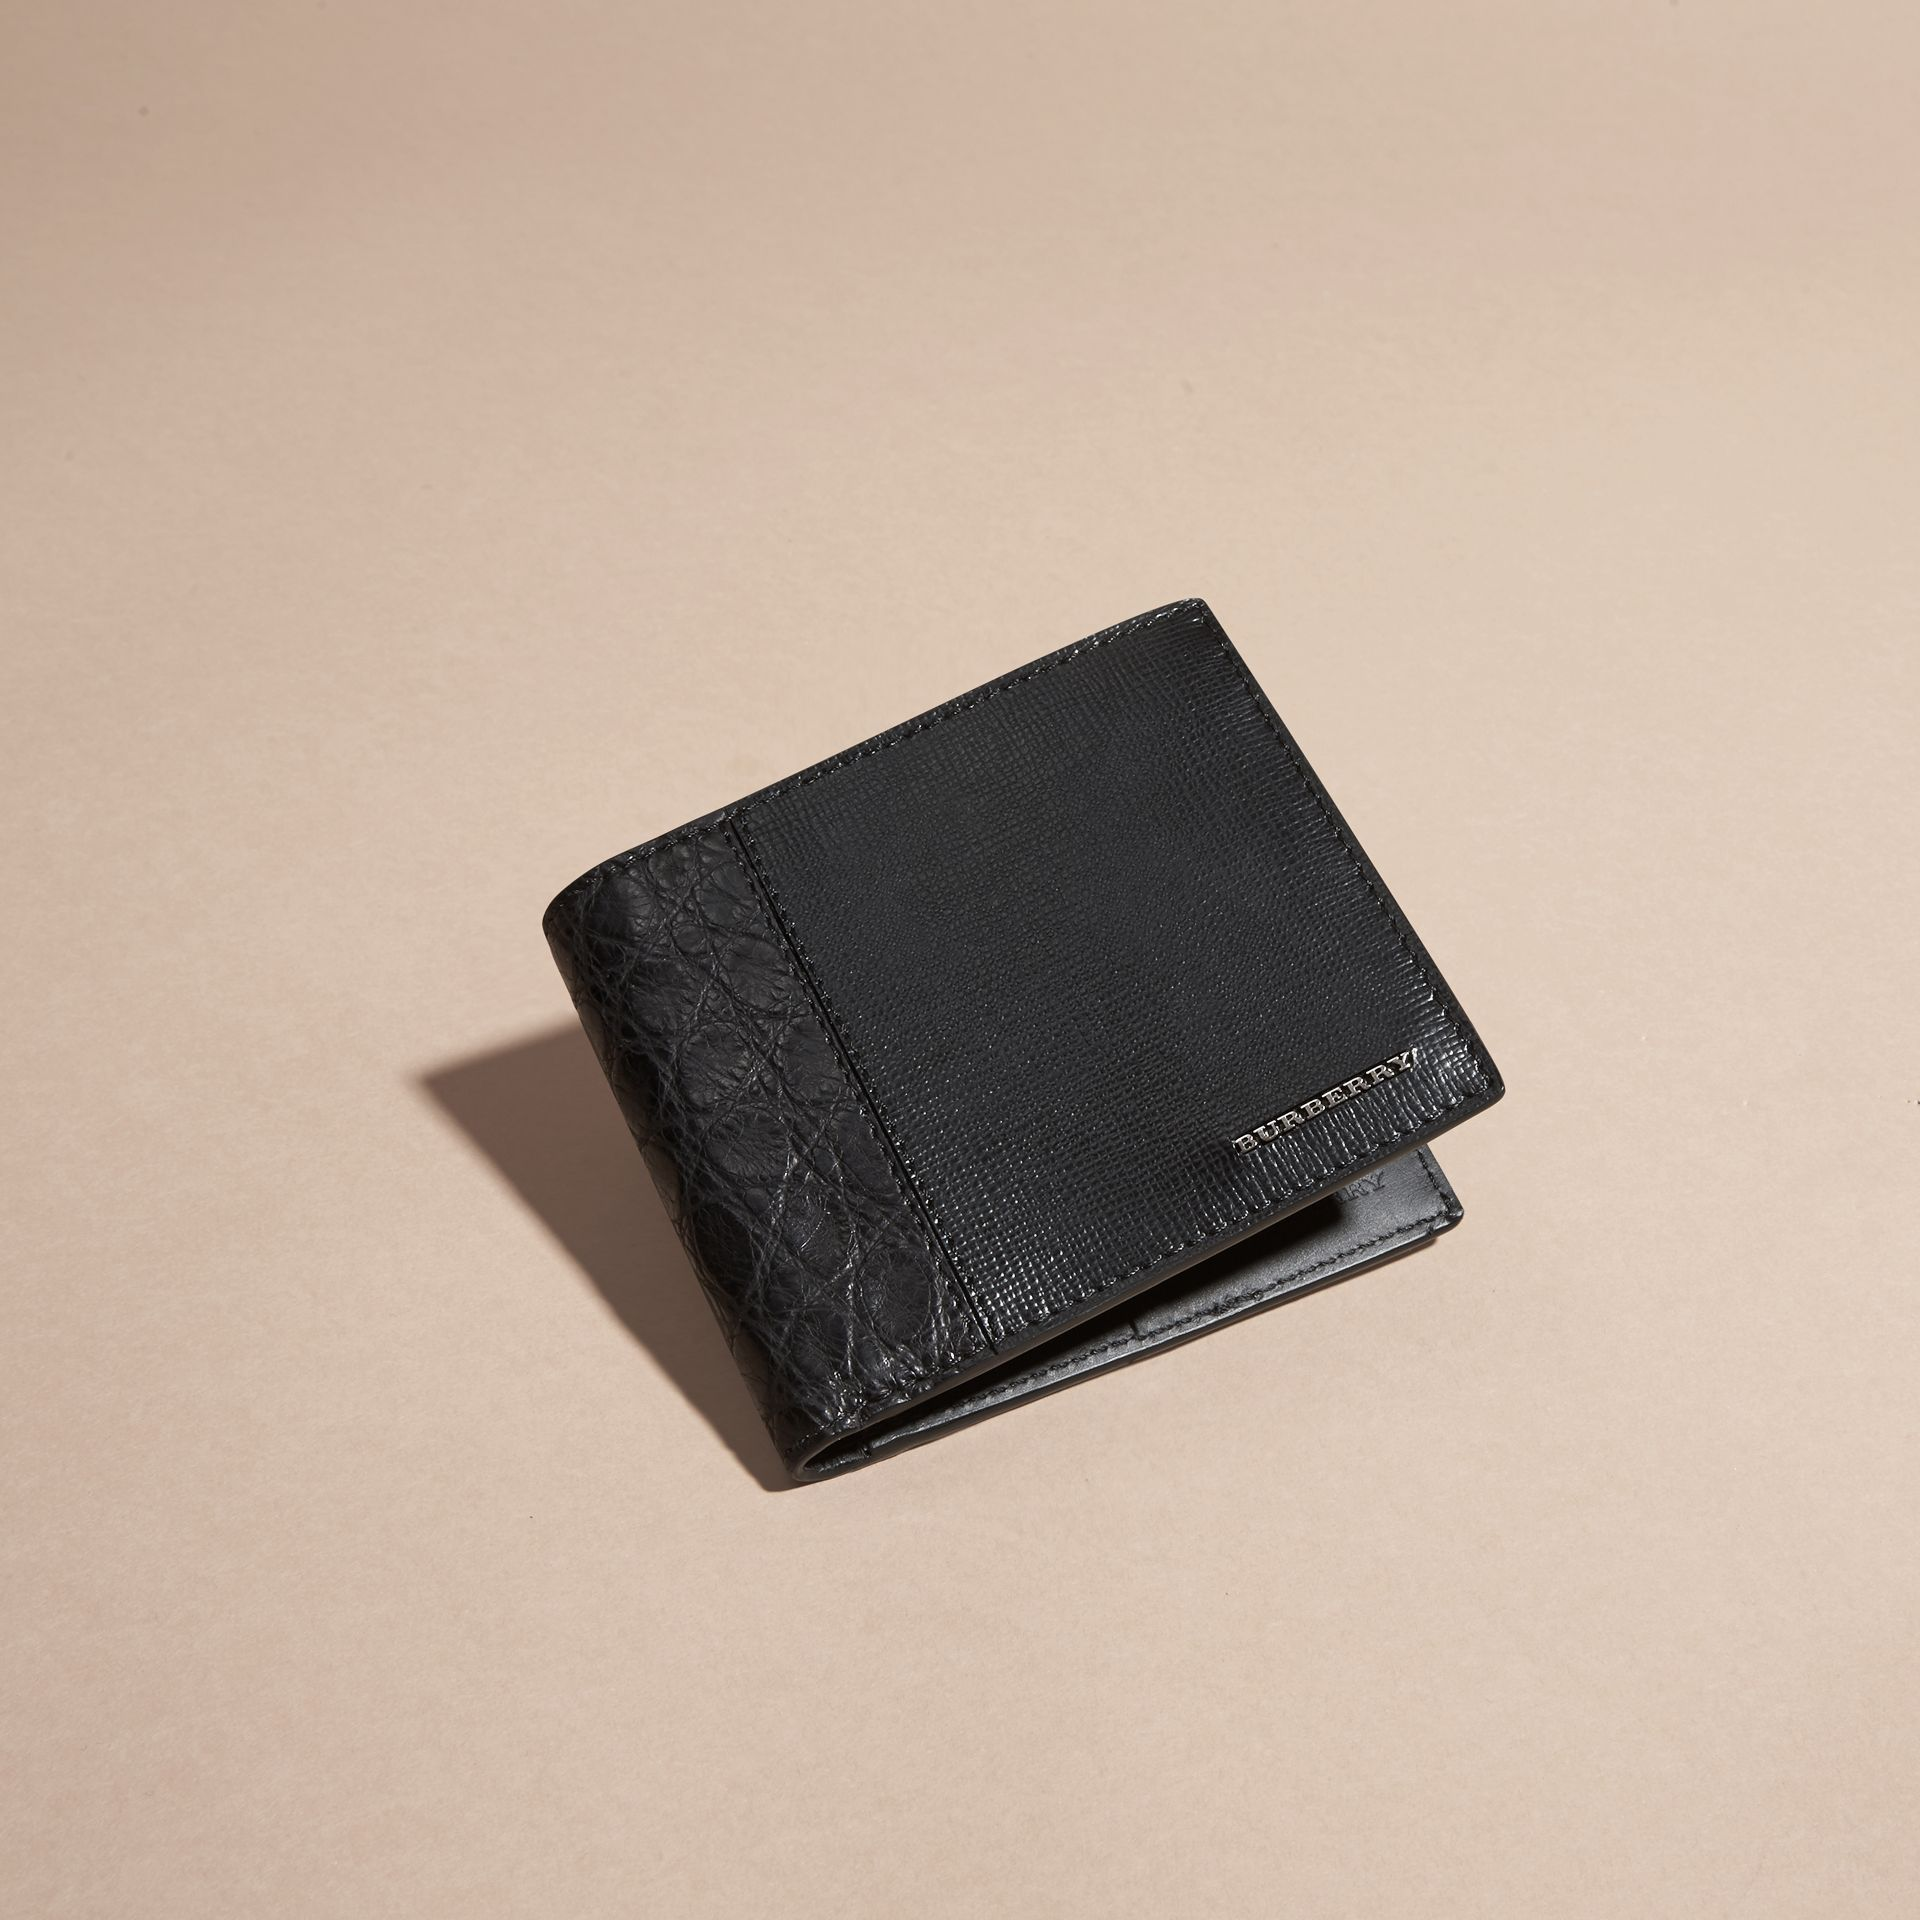 Leather and Alligator International Bifold Wallet in Black - Men | Burberry Australia - gallery image 3